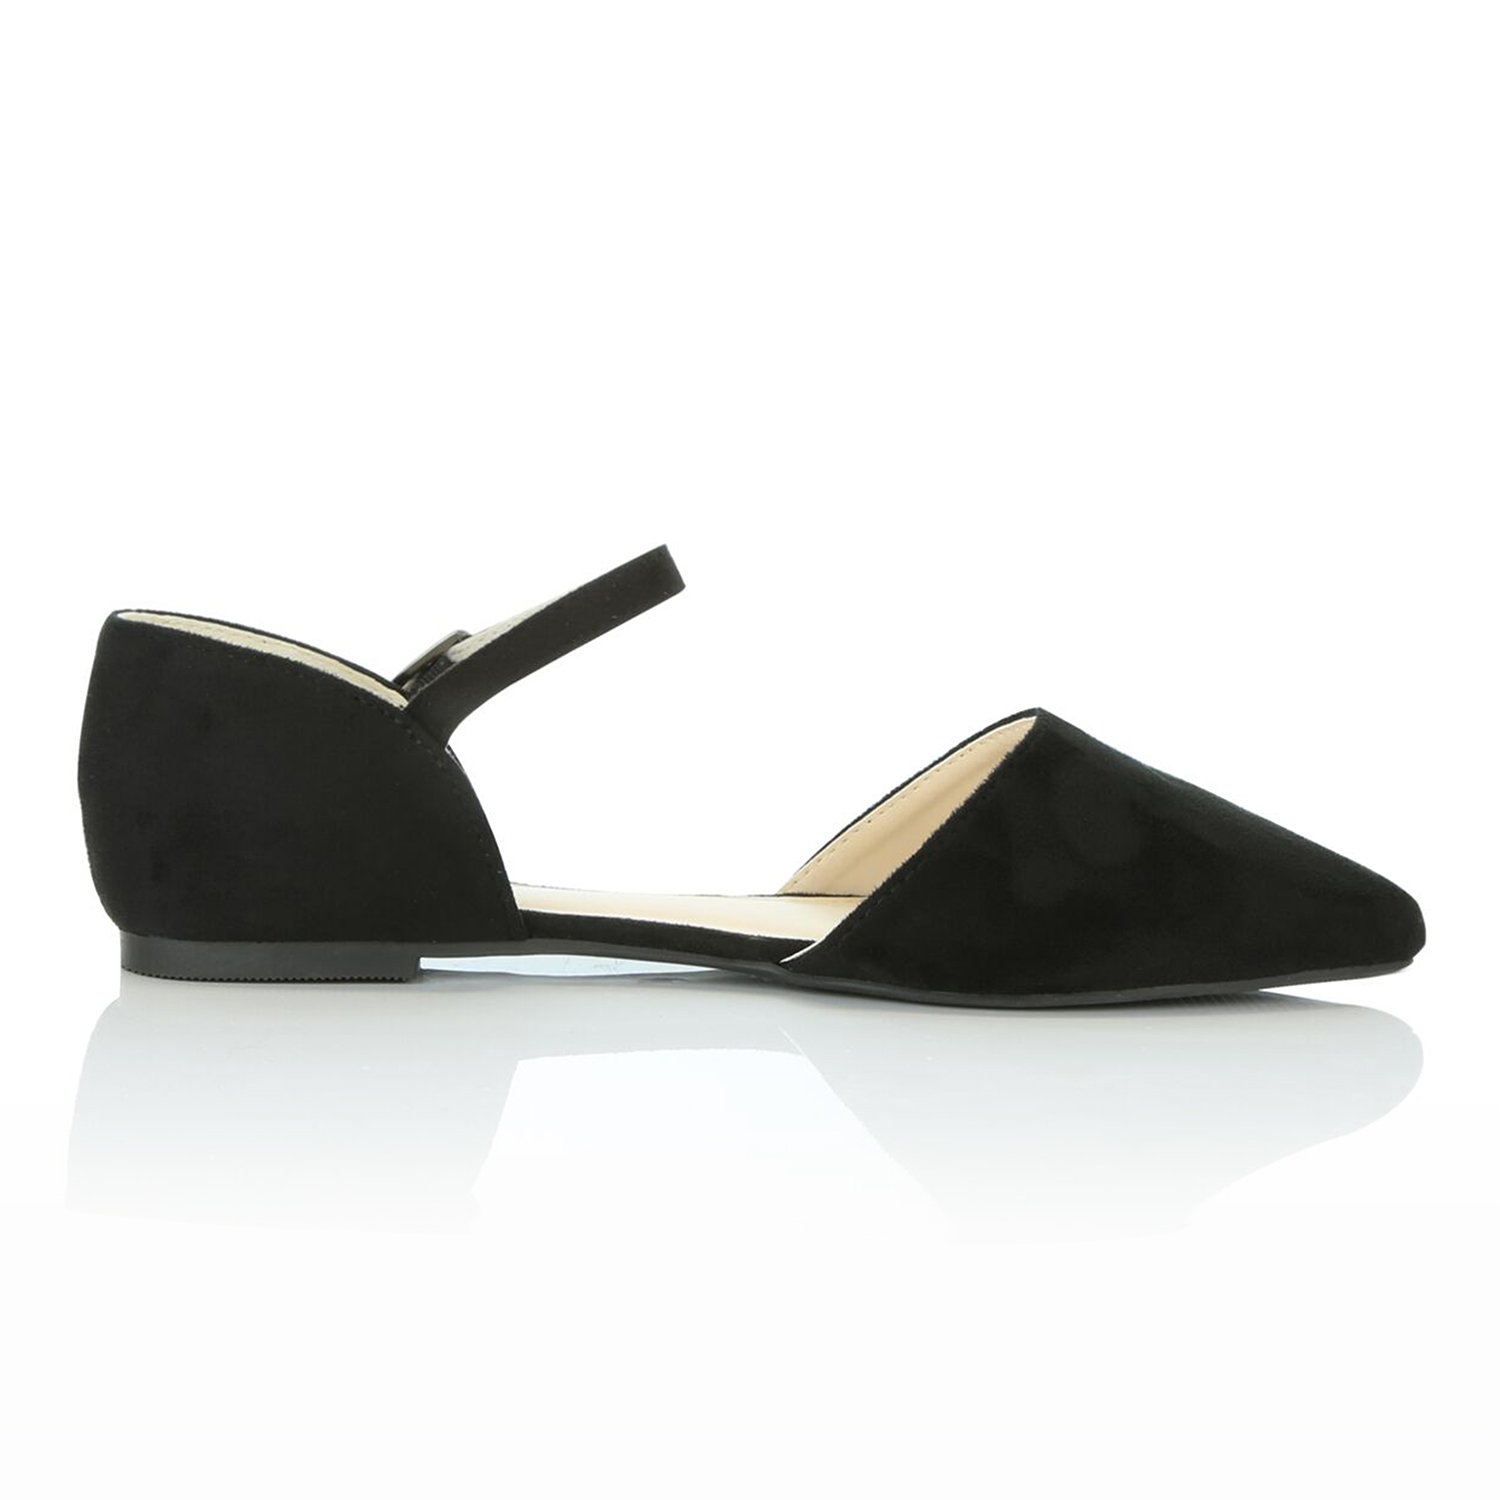 DailyShoes Women's Pointy Toe Flats D'Orsay Buckle Ankle Strap Casual Comfort Ballerina Ballet Flat Shoes, Black Suede, 9 B(M) US by DailyShoes (Image #7)